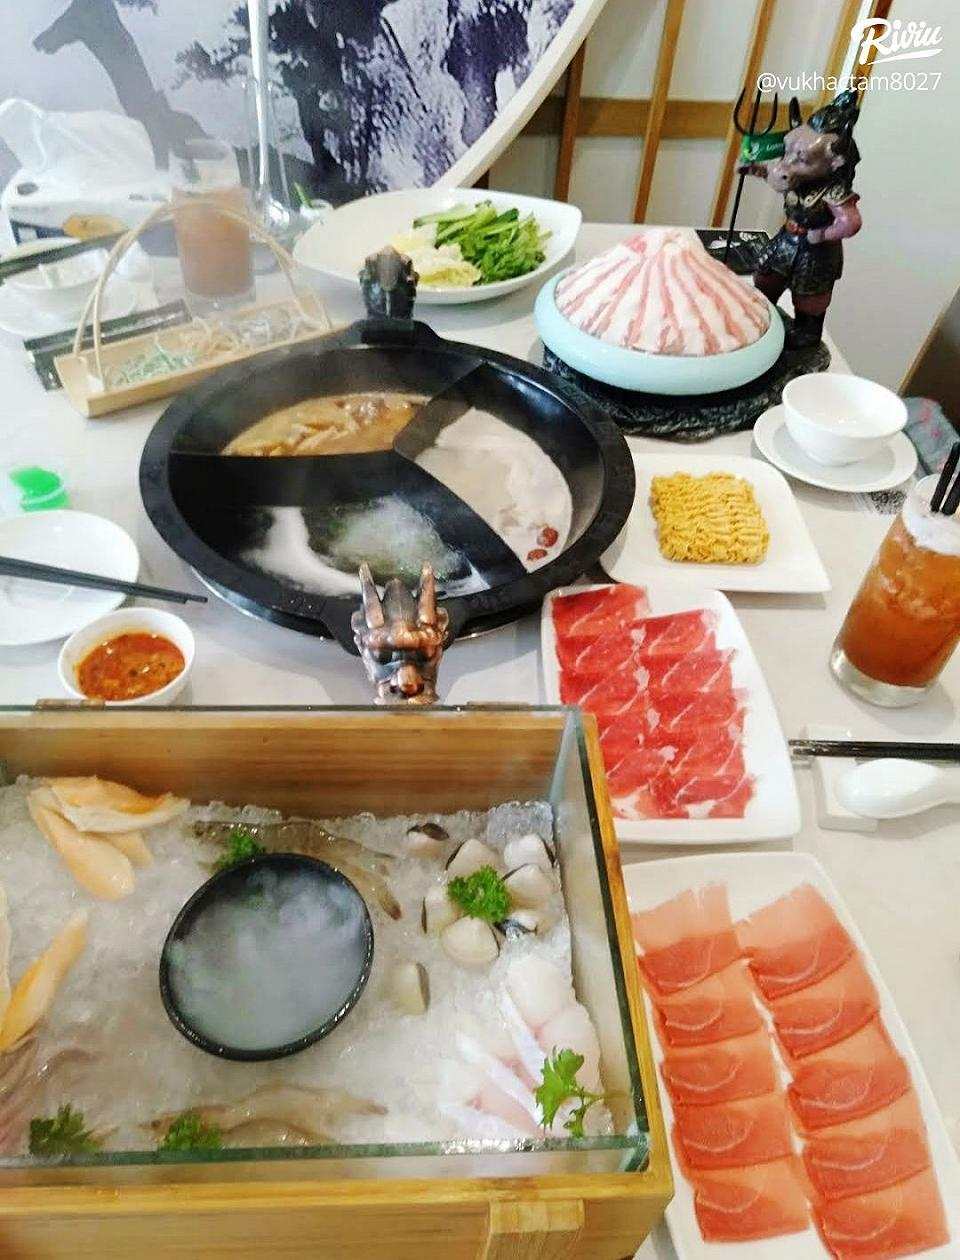 lame hotpot - anh 1